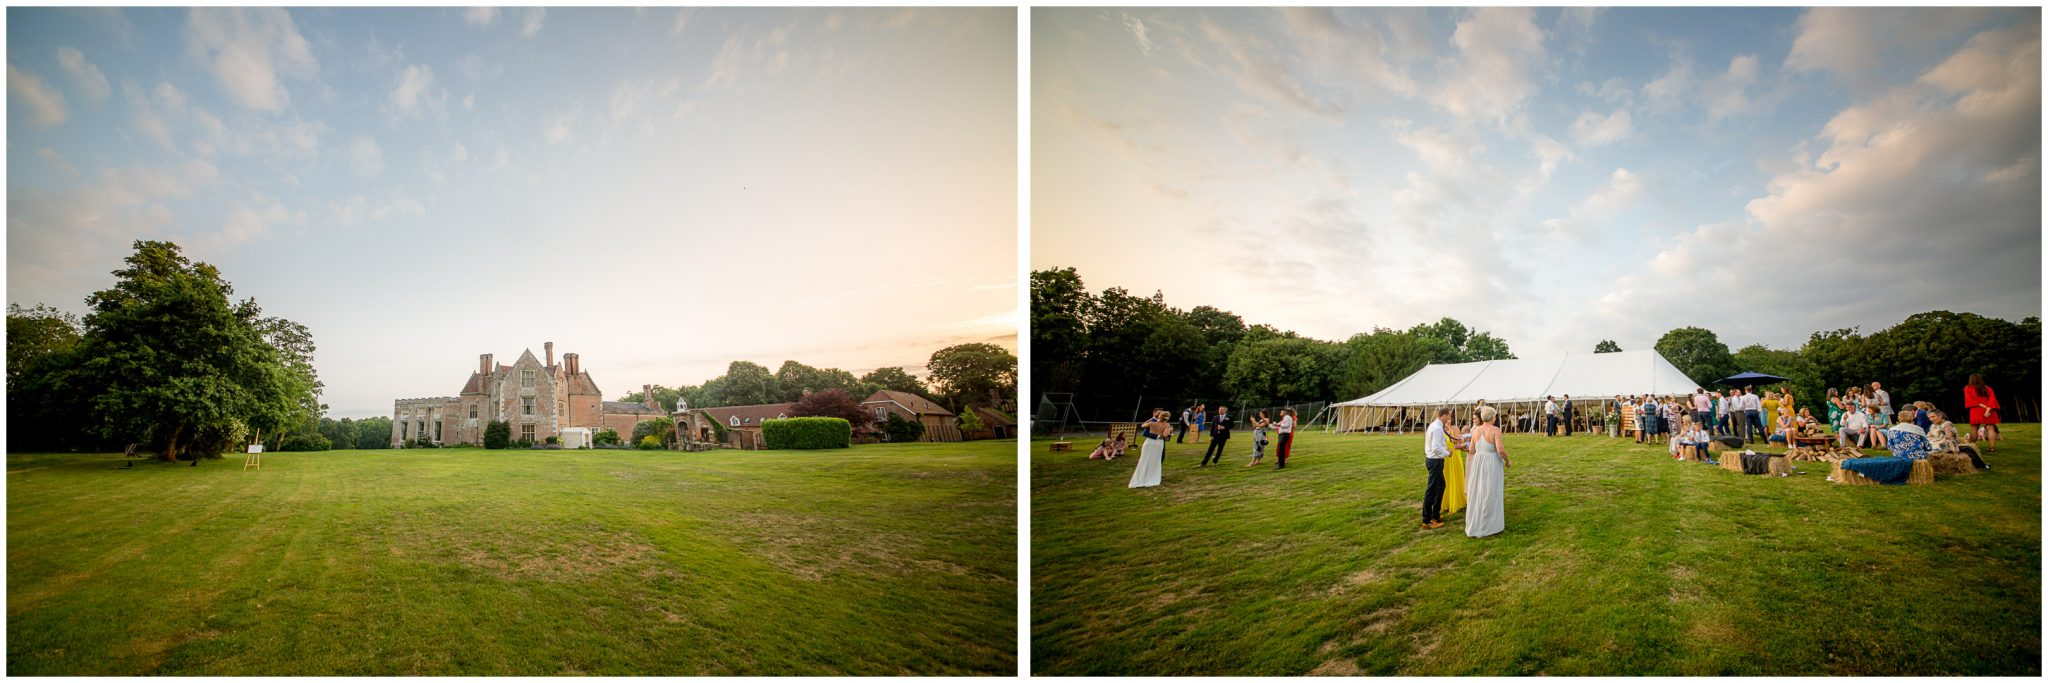 New House Estate wedding venue and marquee in the Summer evening light